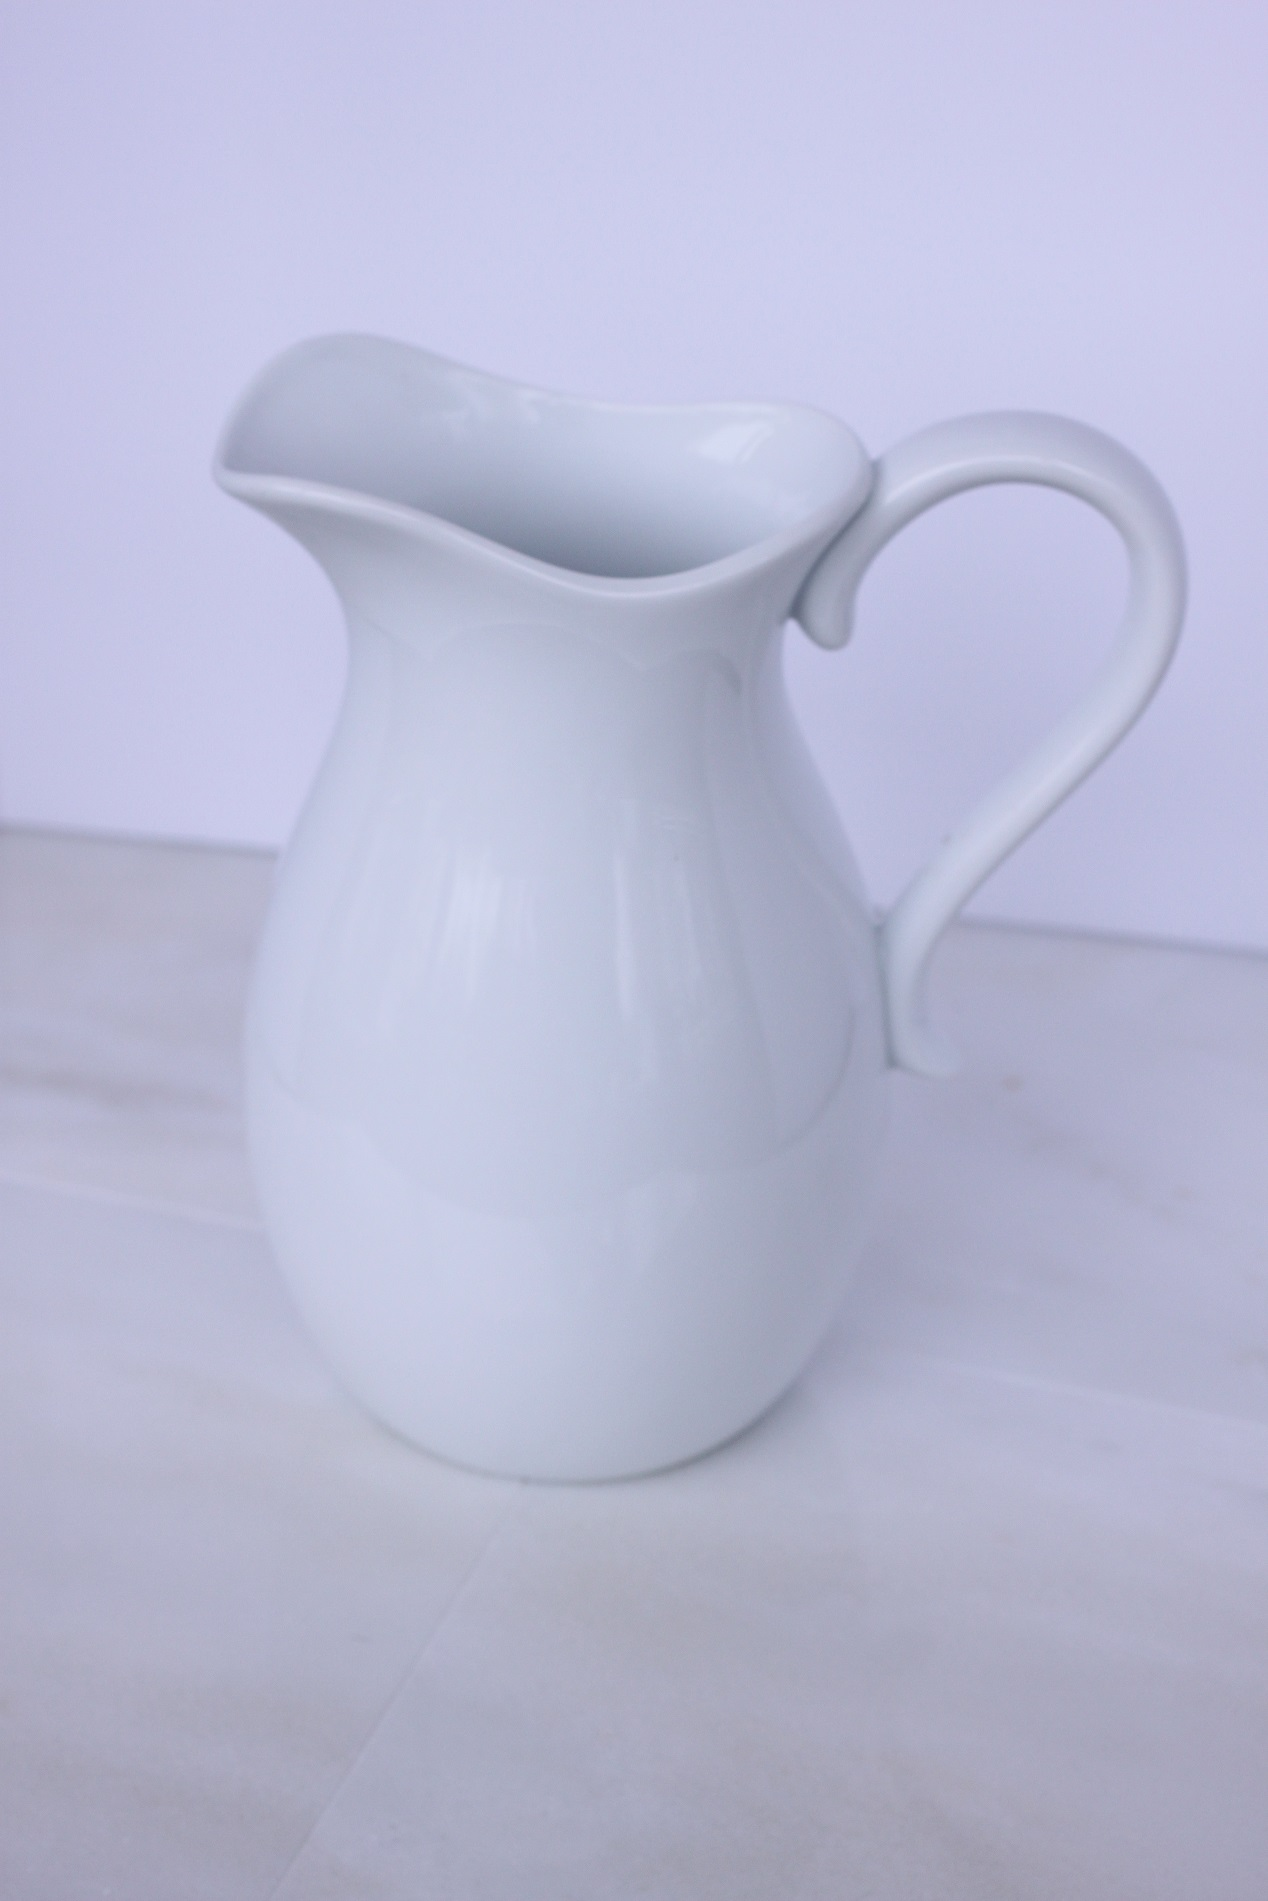 Copy of White Pitcher $5/ea.